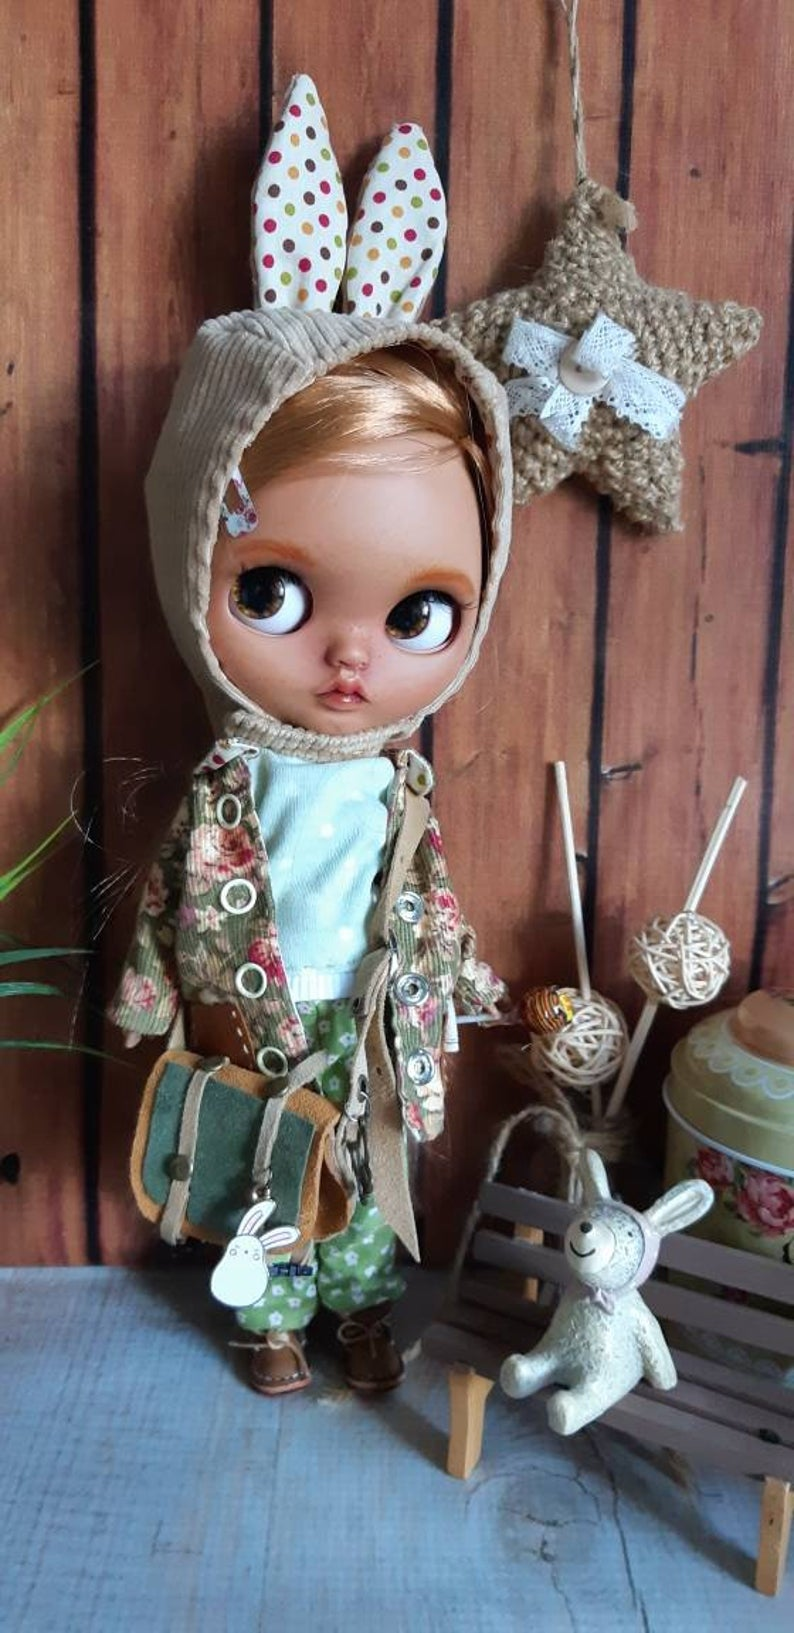 Betty - Custom Blythe Doll One-Of-A-Kind OOAK Sold-out Custom Blythes